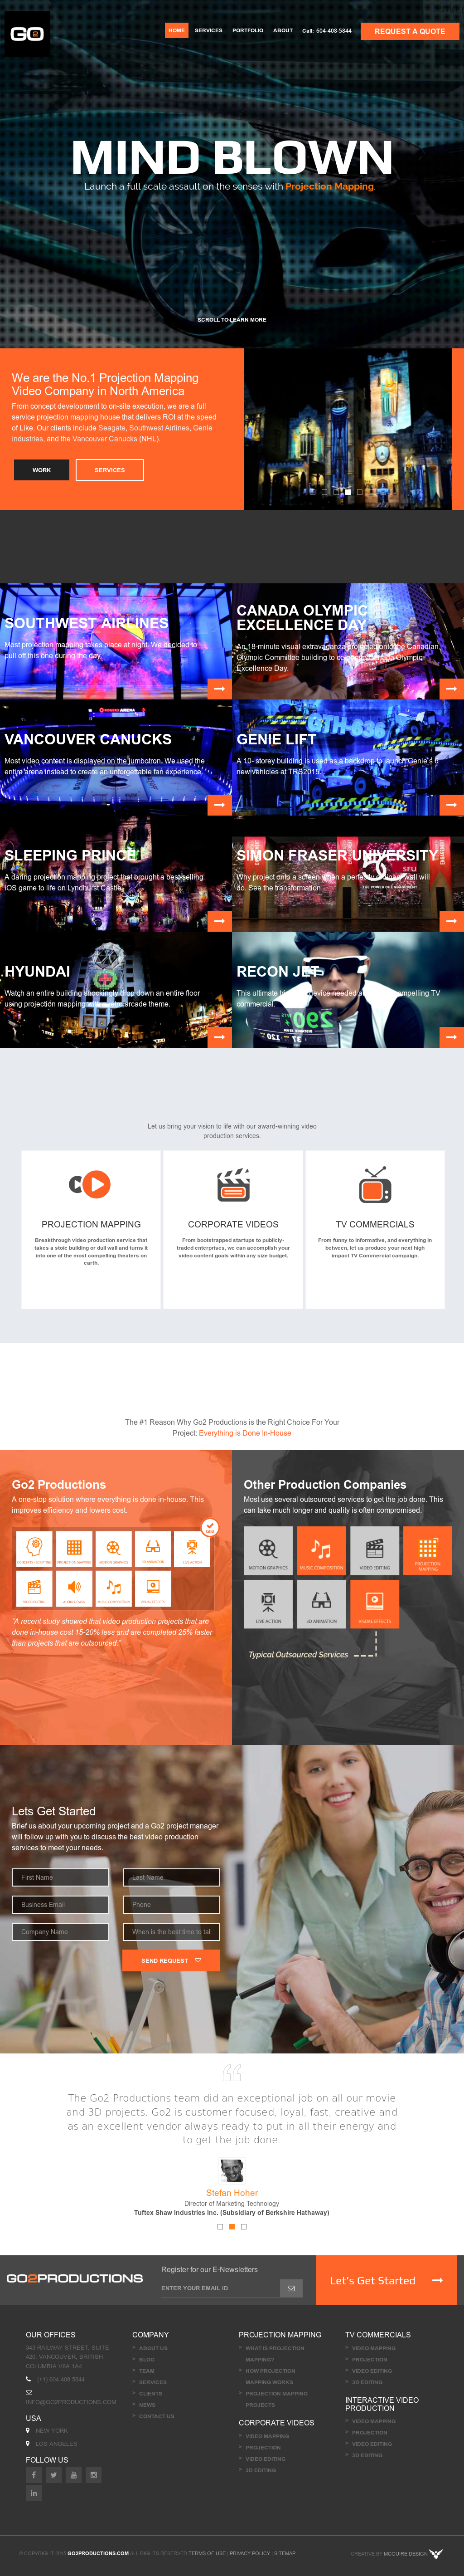 Go2 Productions Competitors, Revenue and Employees - Owler Company